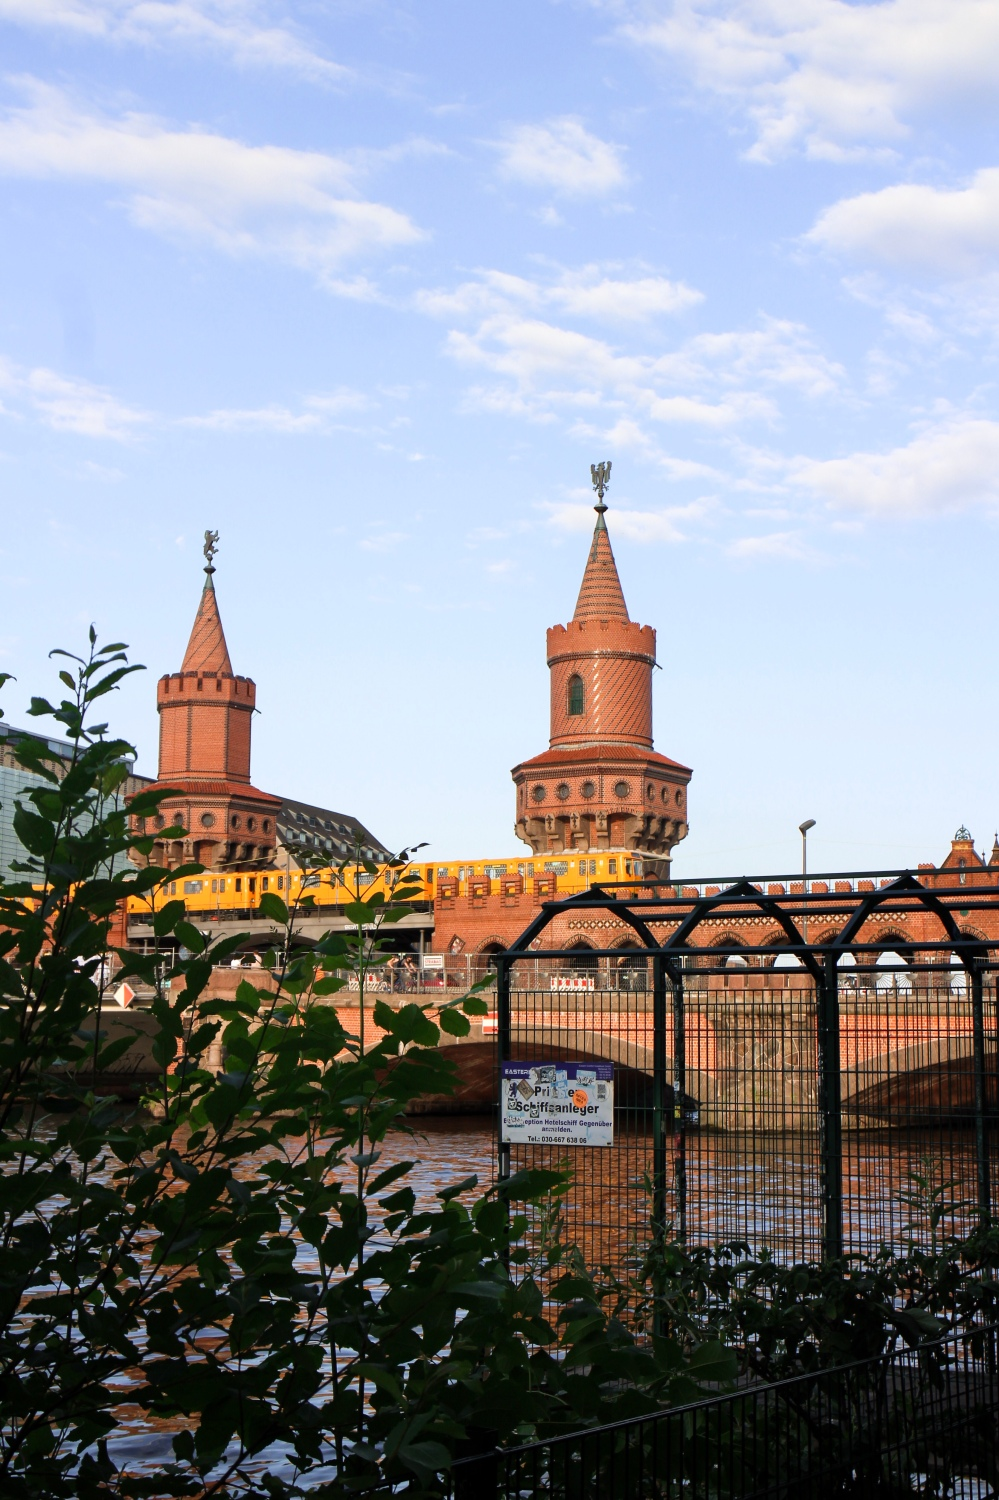 A yellow U-Bahn train going across the River Spree on a red brick turreted bridge.